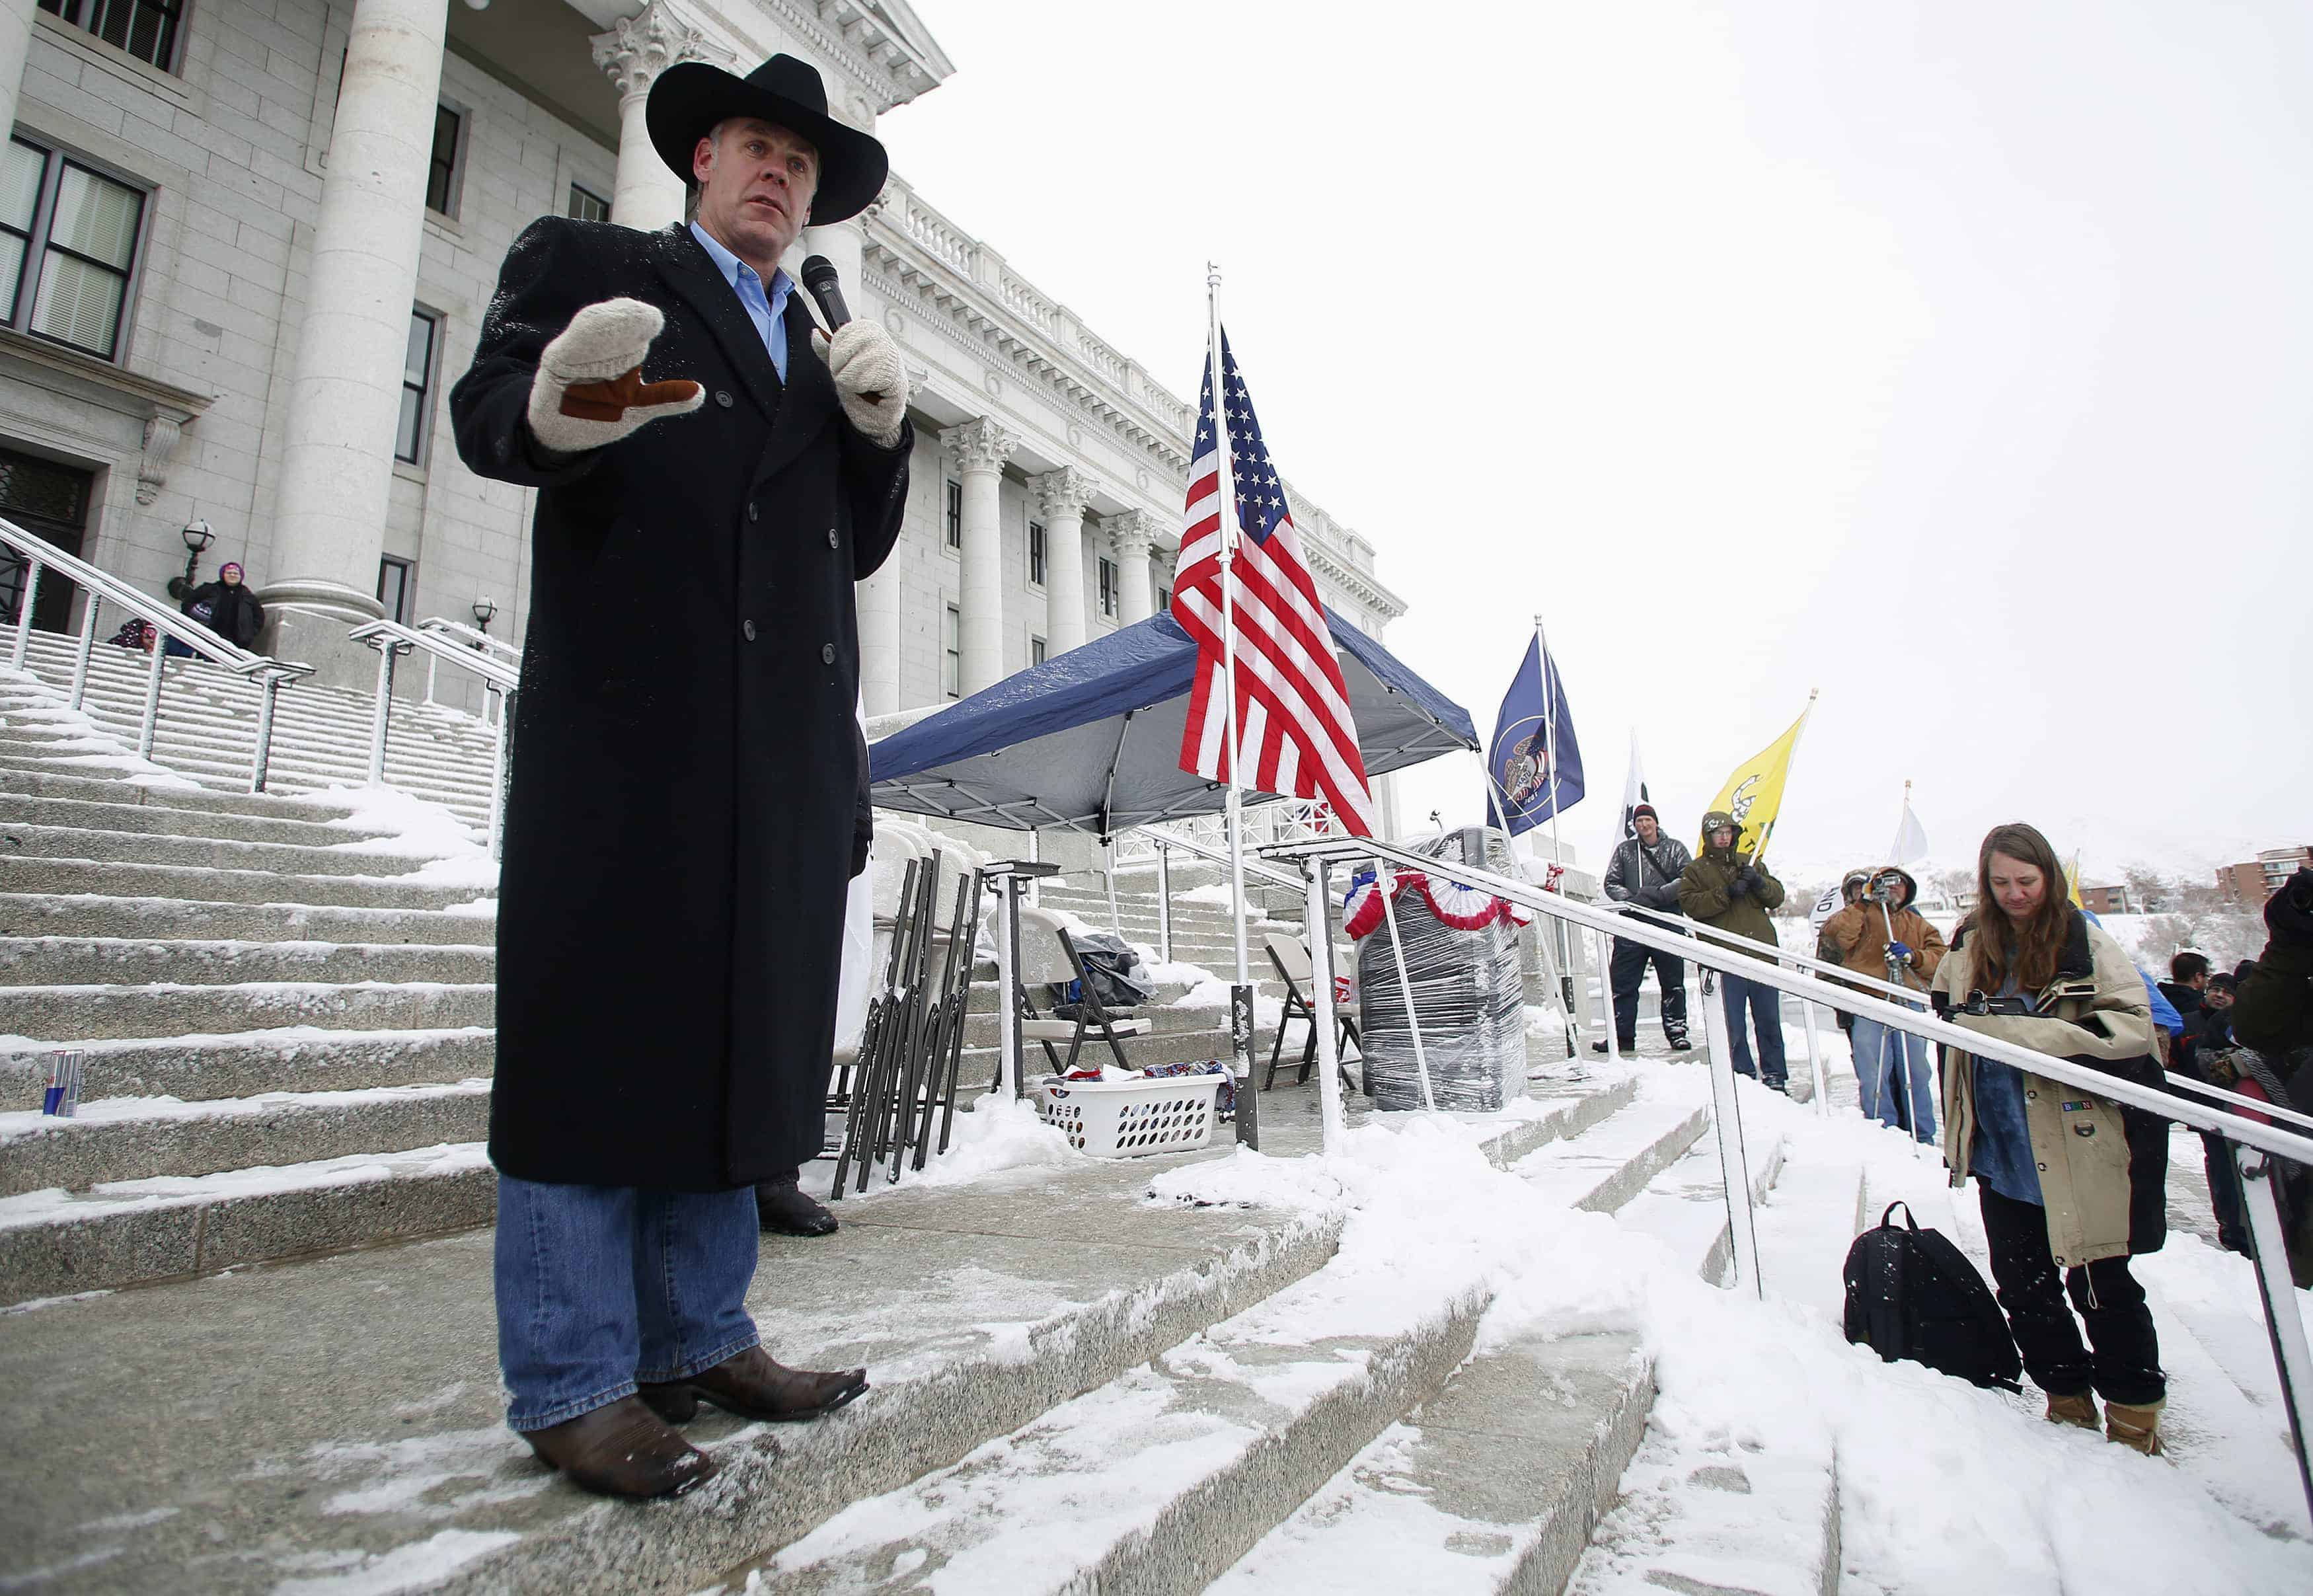 Montana state Senator Ryan Zinke addresses a pro-gun activist rally as part of the National Day of Resistance at the state Capitol in Salt Lake City, Utath. Photo by Jim Urquhart/Reuters